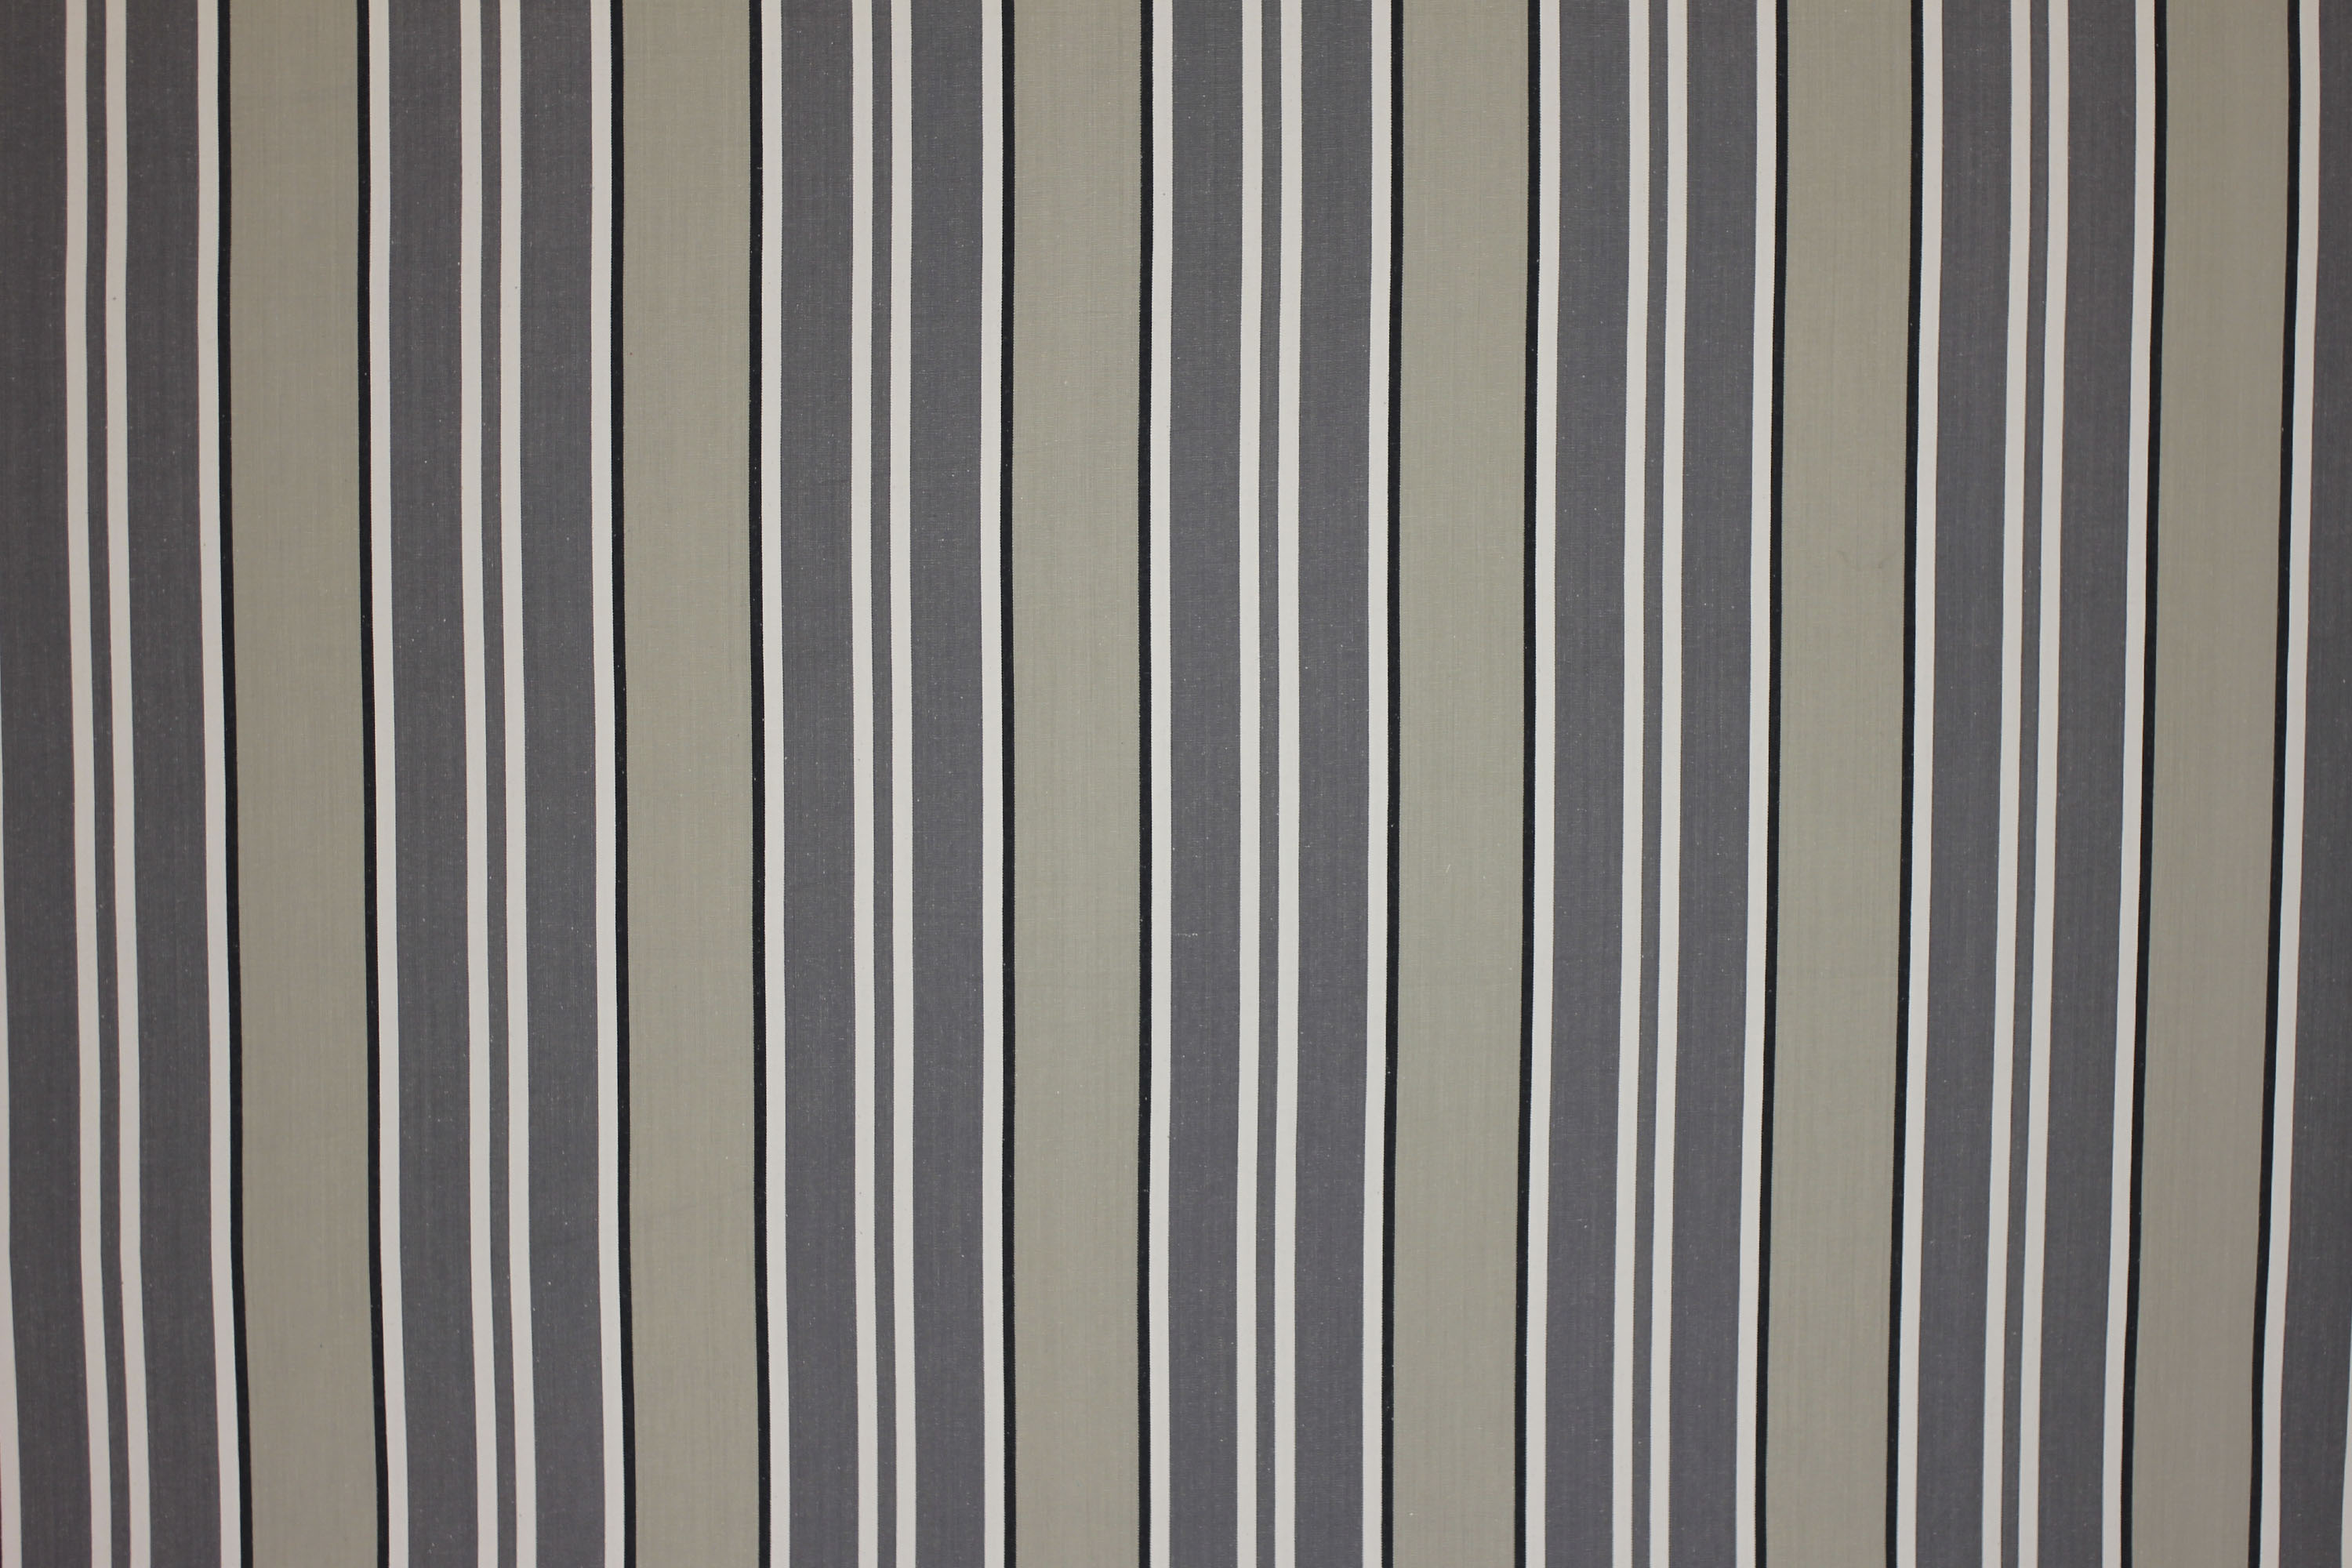 Grey Striped Fabrics | Stripe Cotton Fabrics | Striped Curtain Fabrics | Upholstery Fabrics  Kendo Grey Stripes